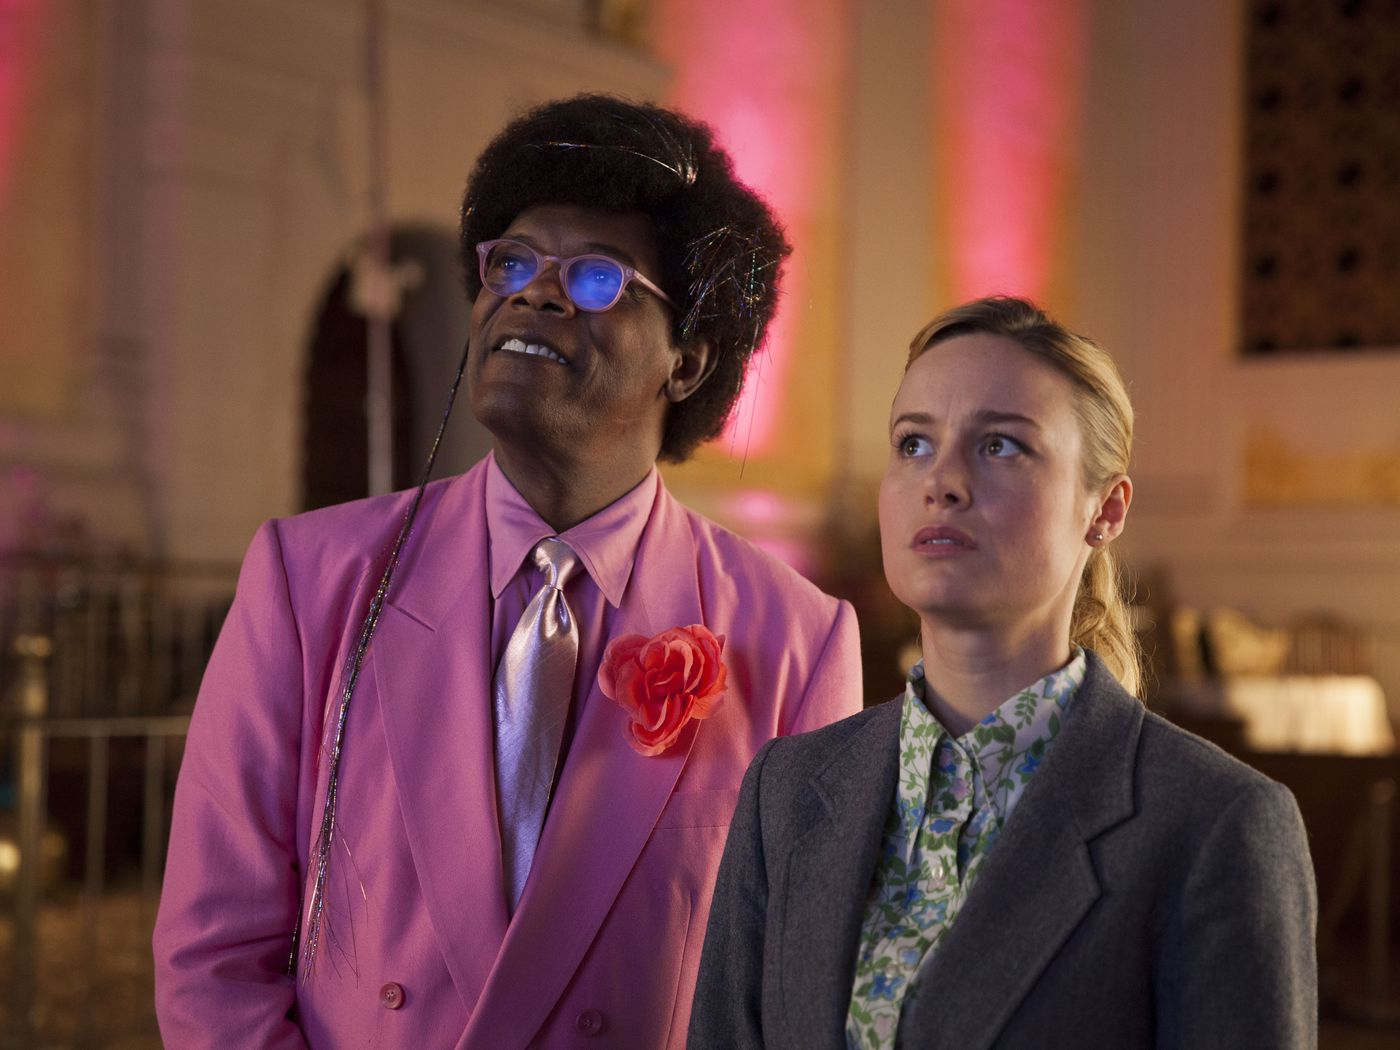 Netflix S Unicorn Store Is An Odd Companion Piece To Captain Marvel The Verge But his superhero costume remains his kree captain's uniform. odd companion piece to captain marvel